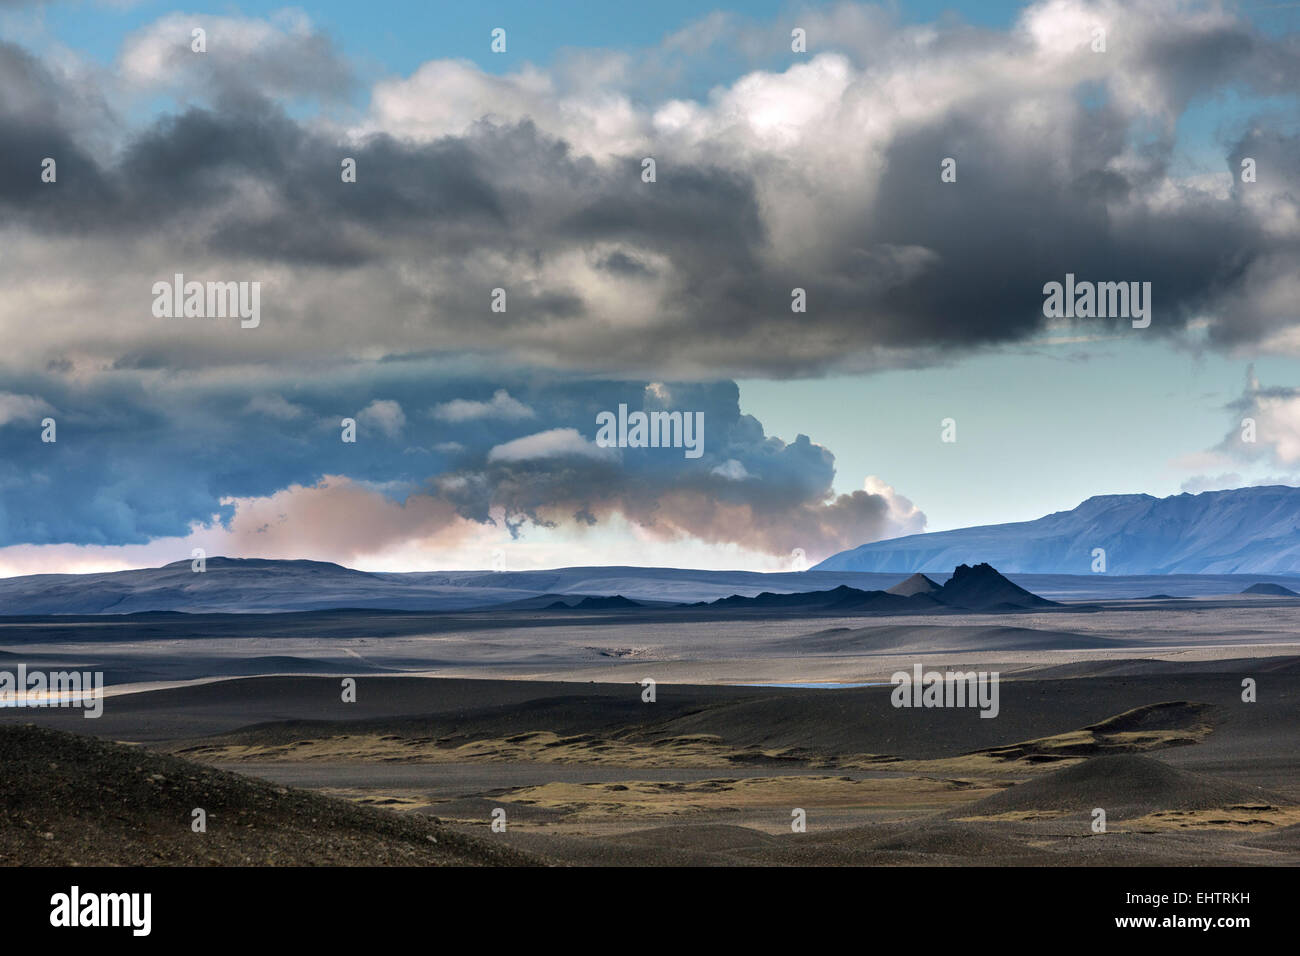 A JOURNEY IN ICELAND, EUROPE - Stock Image